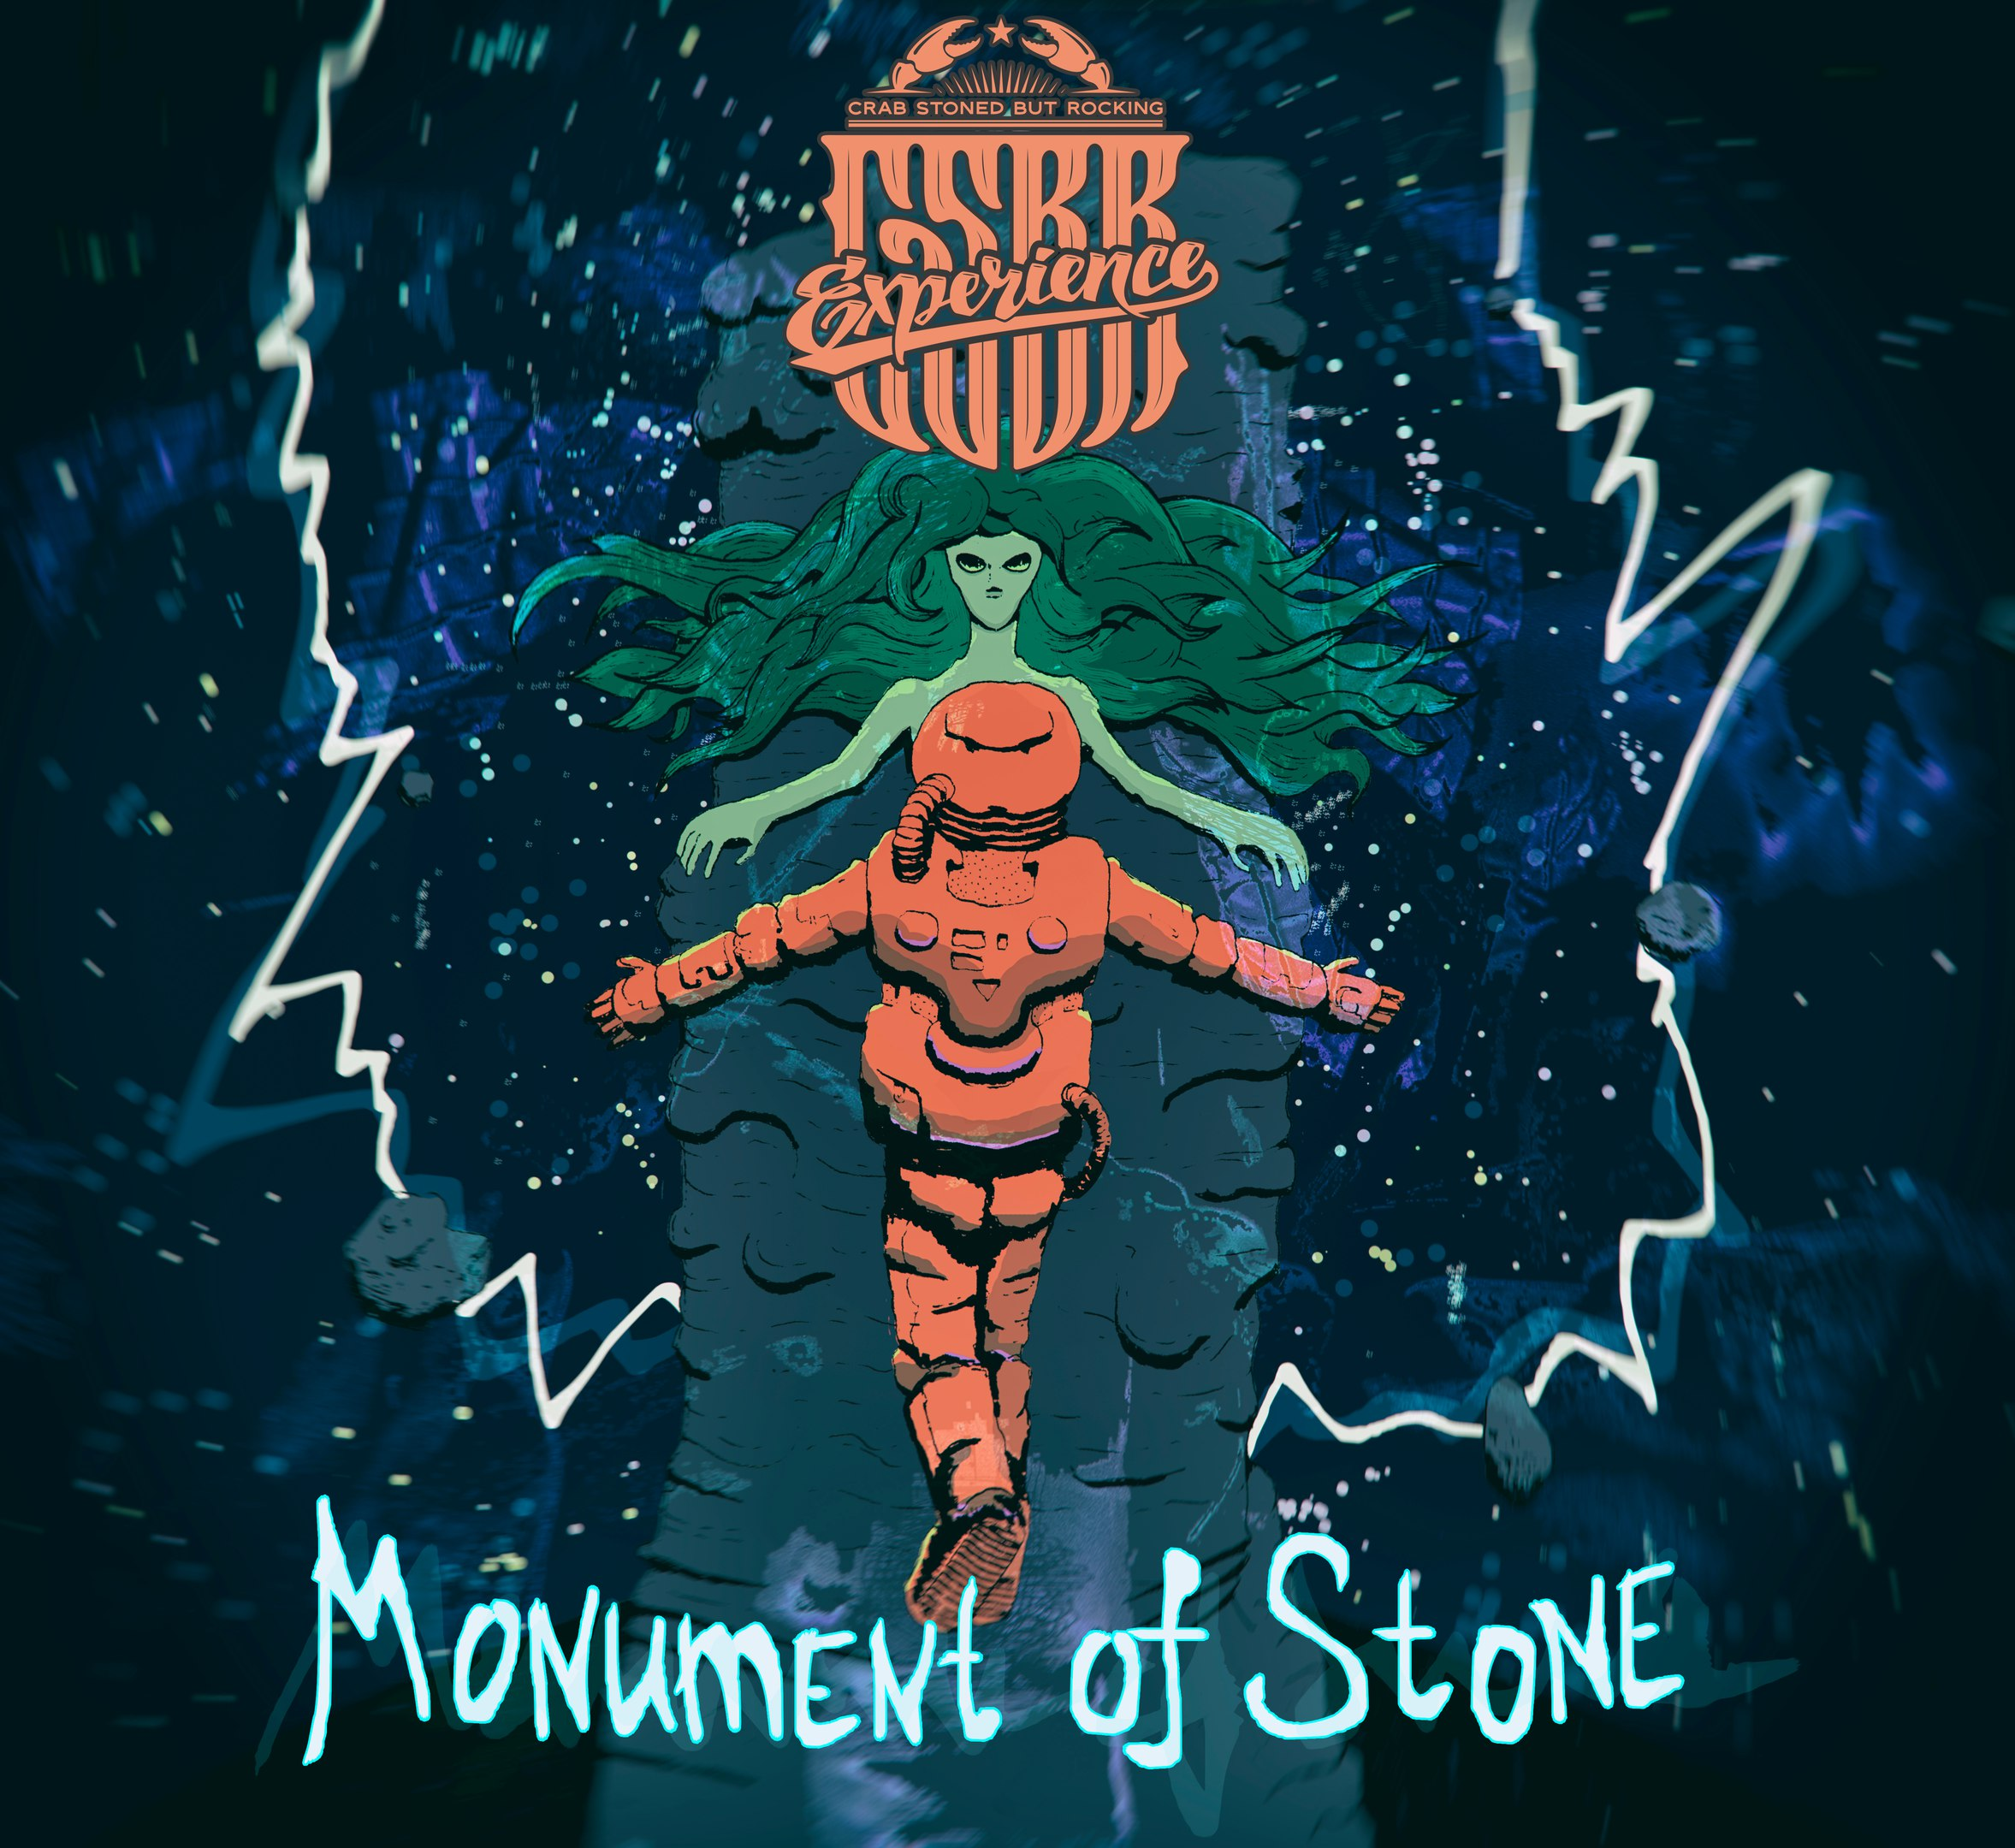 CSBR Experience – Monument of Stone